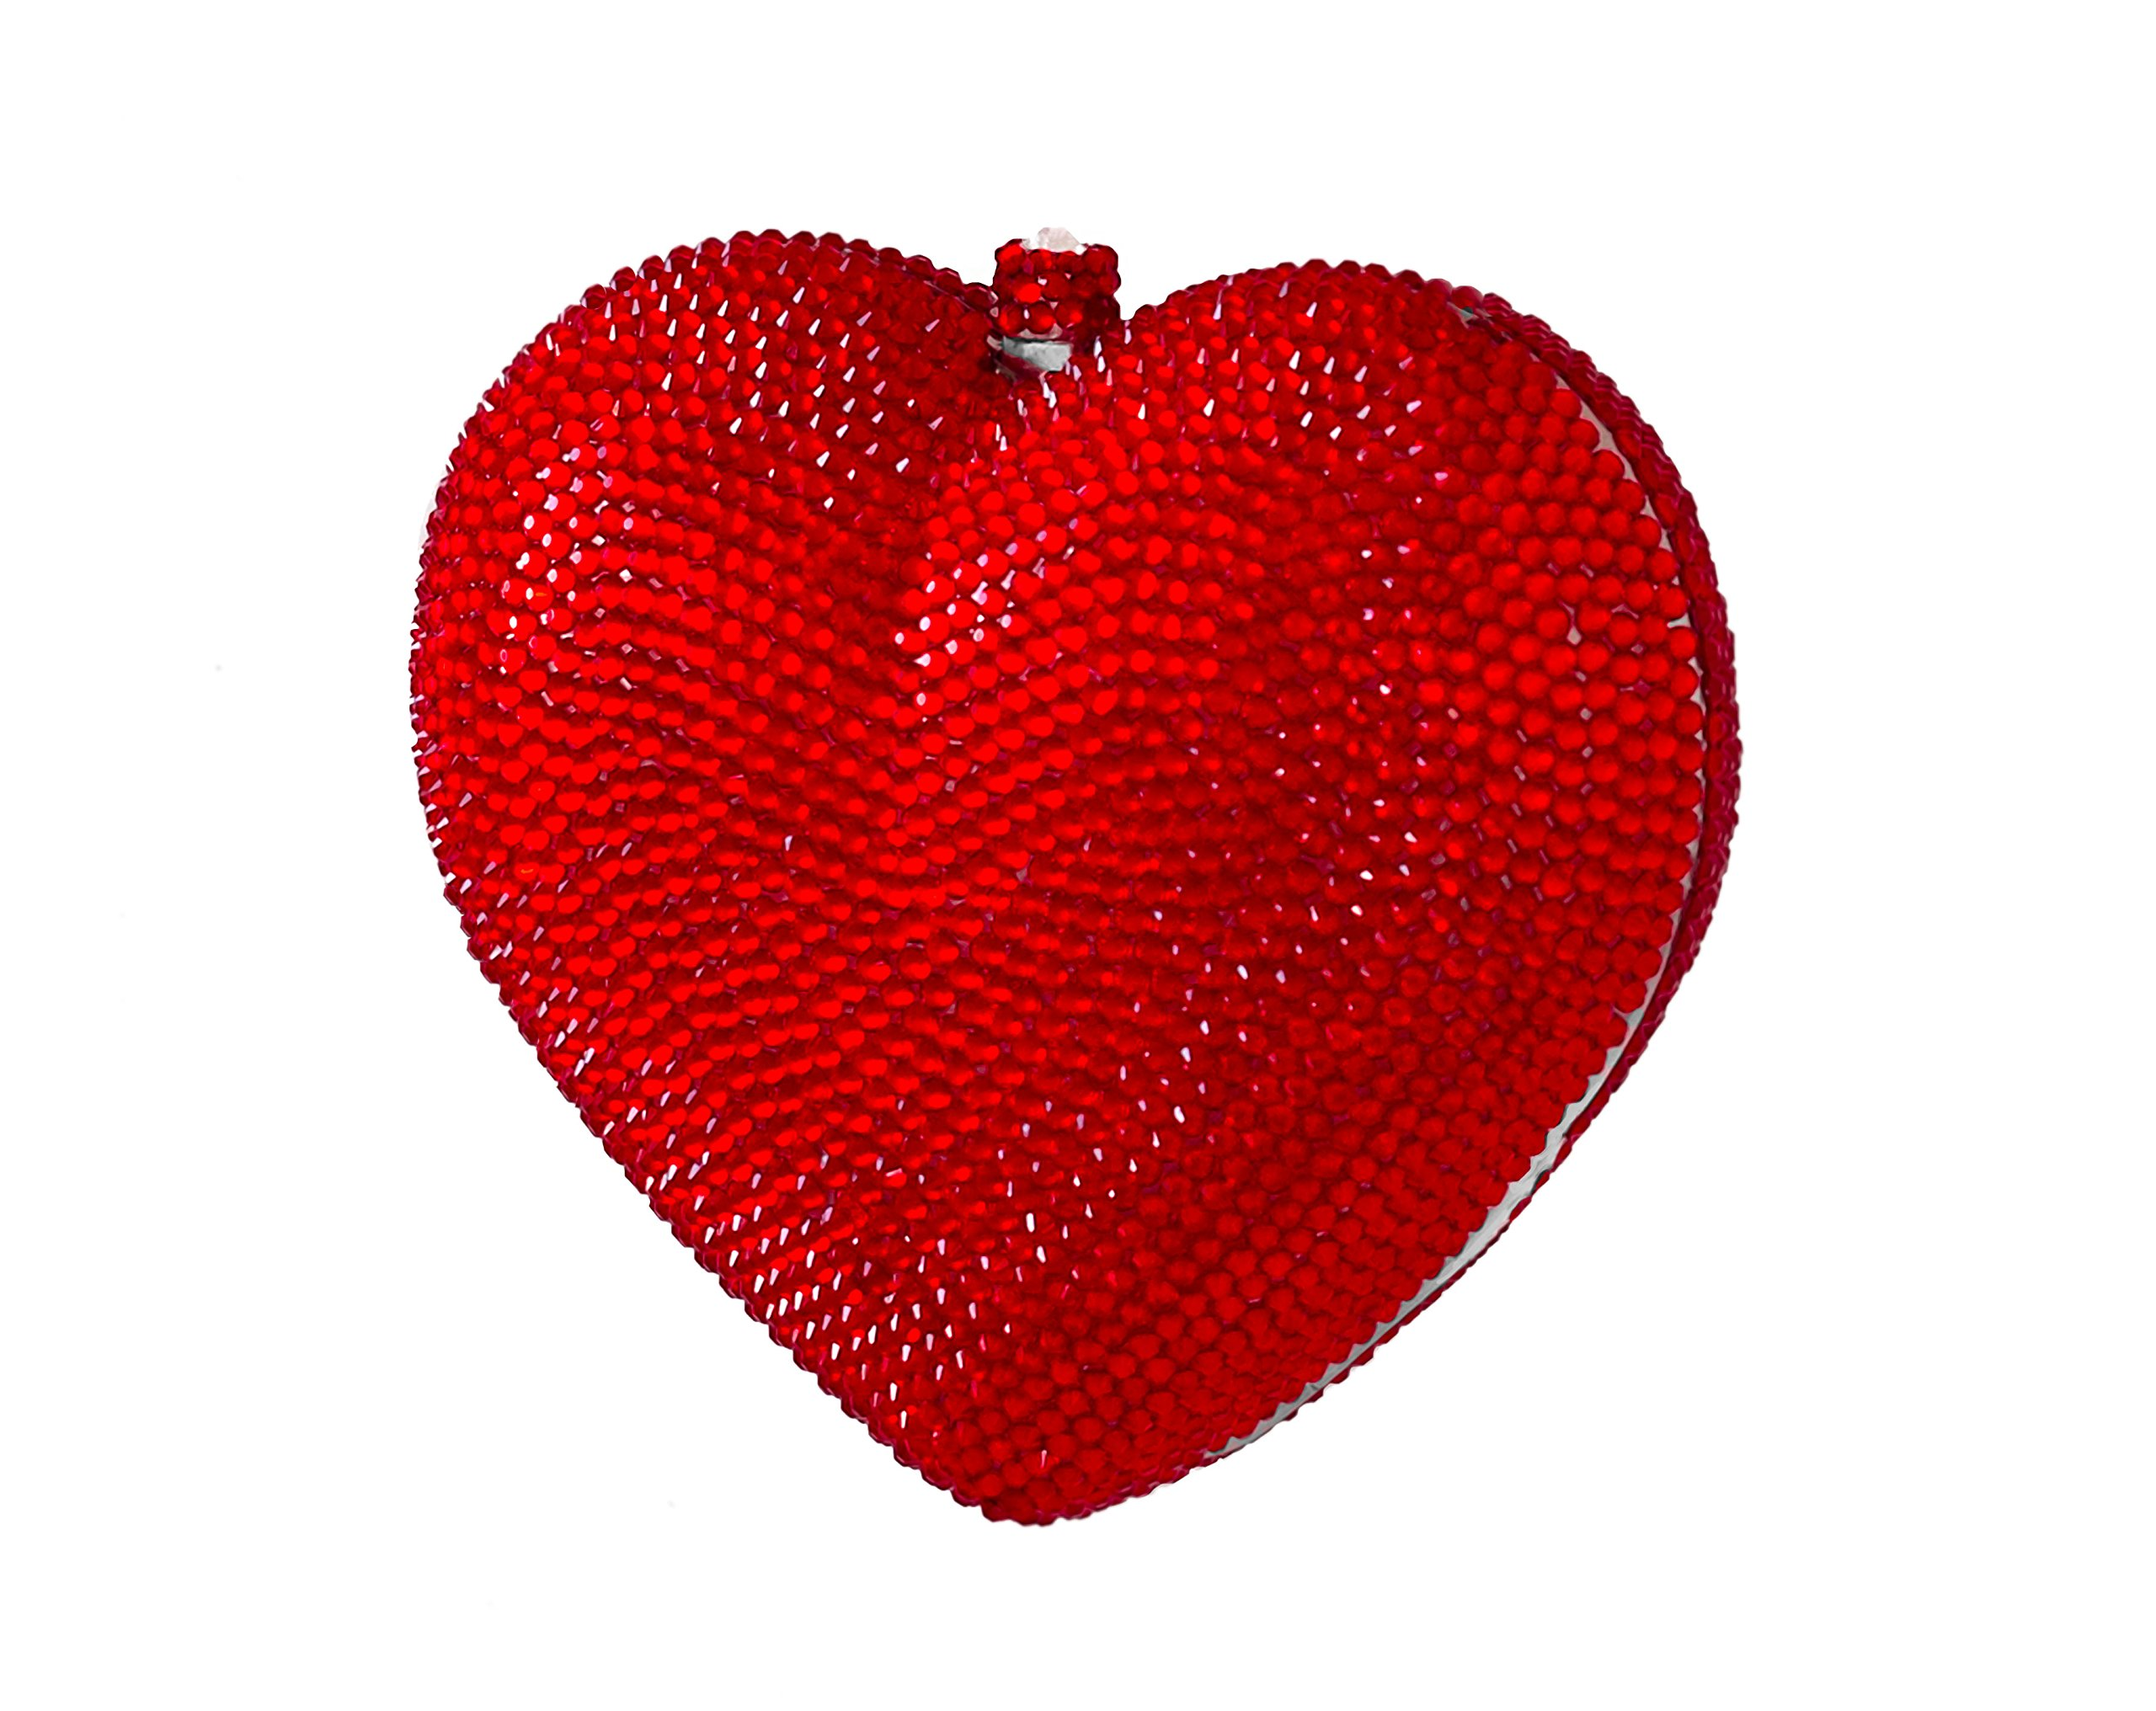 3D Heart Shaped Crystal Bridal Clutch Formal Party Evening Bag Pave Minaudiere Compact Mirror Gift Set Crimson Red